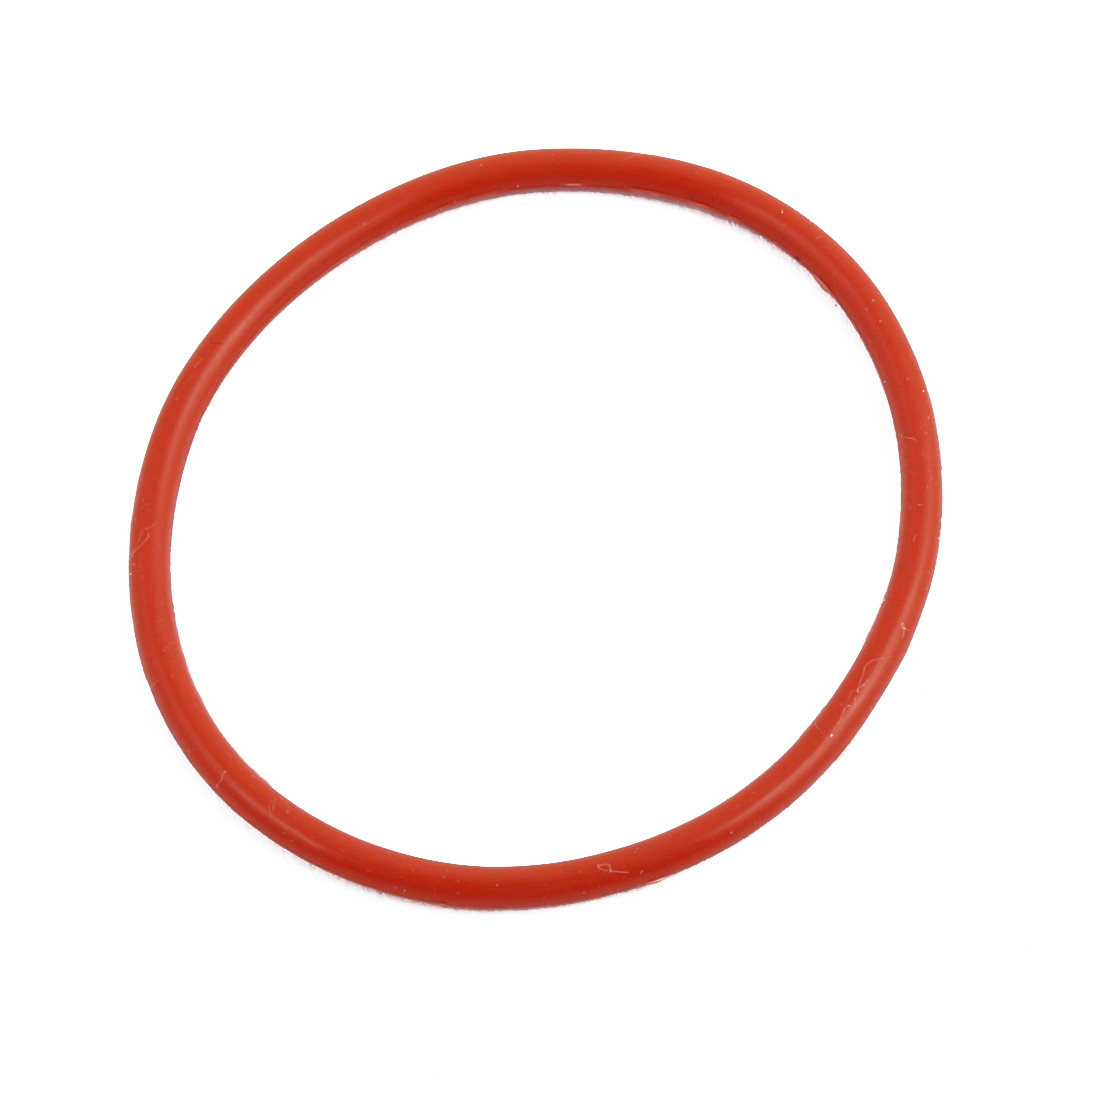 Red Round Nitrile Butadiene Rubber NBR O-Ring 40mm OD 1.9mm Width